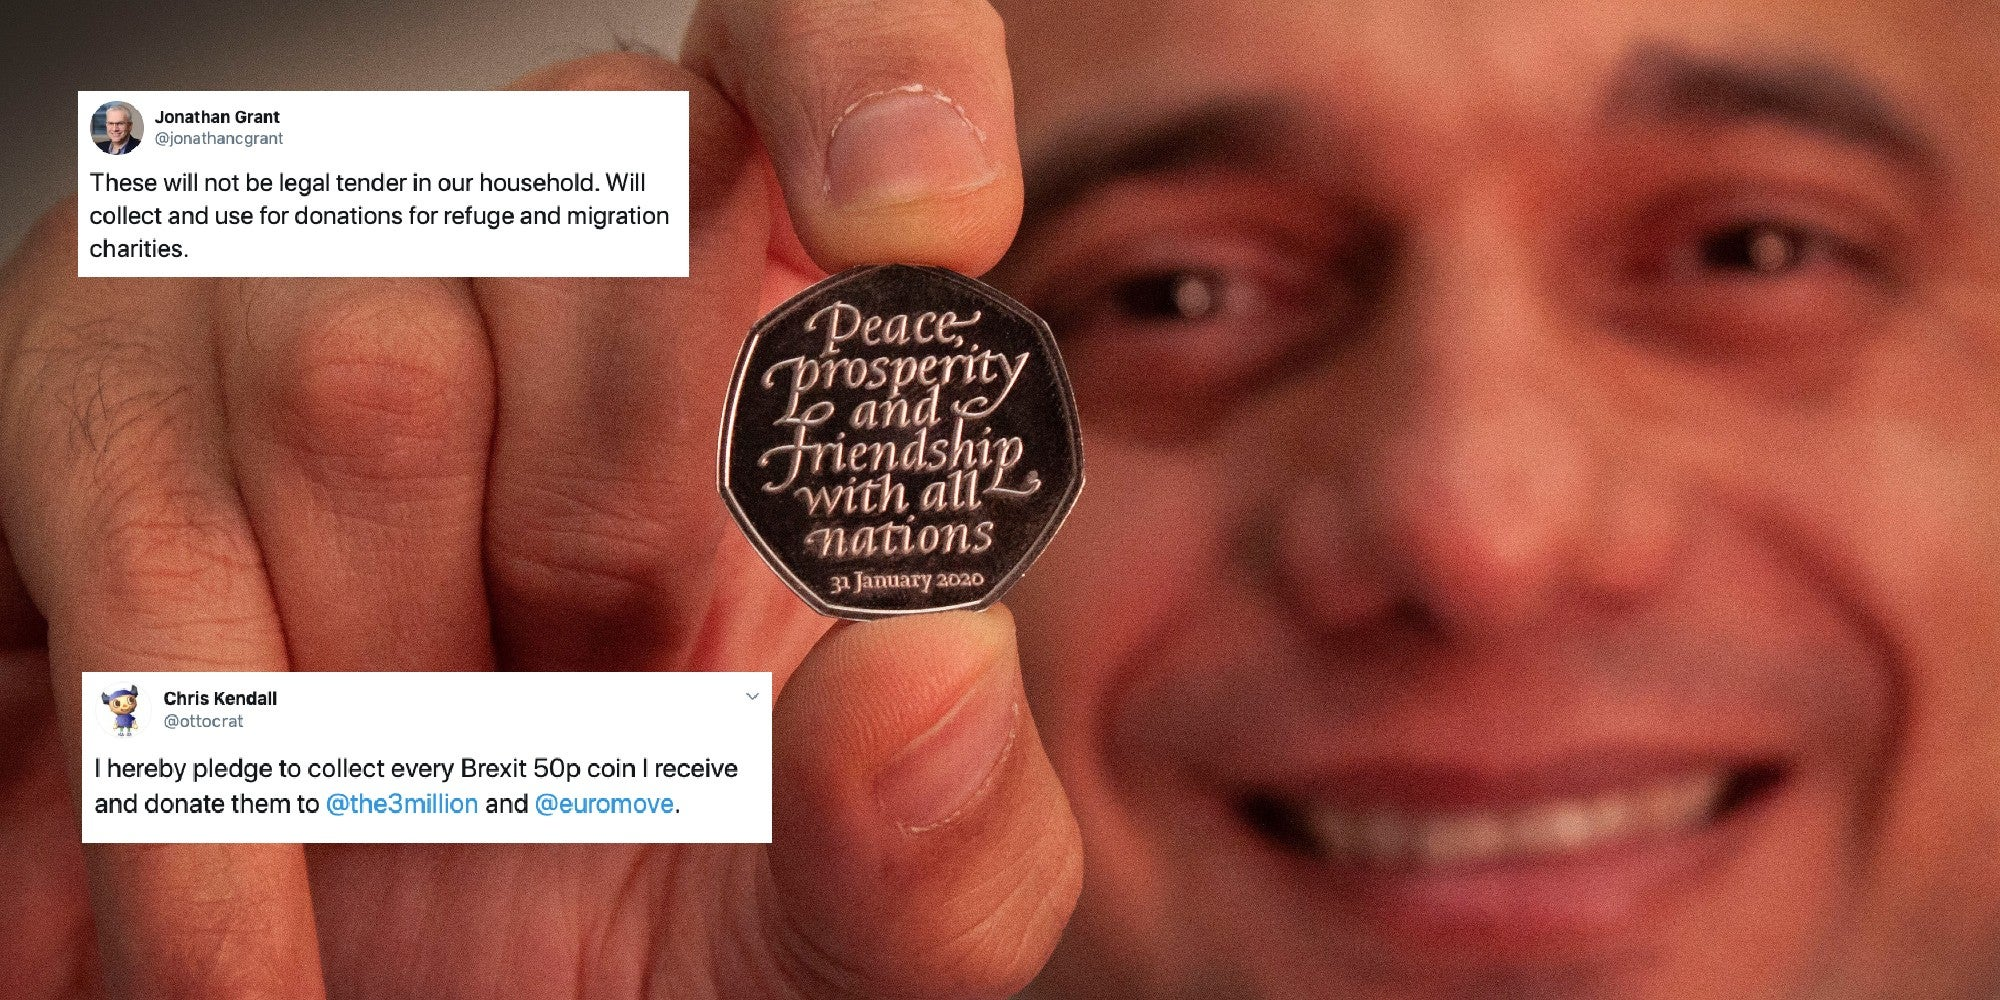 People are planning to donate their Brexit 50p coins to child refuge…